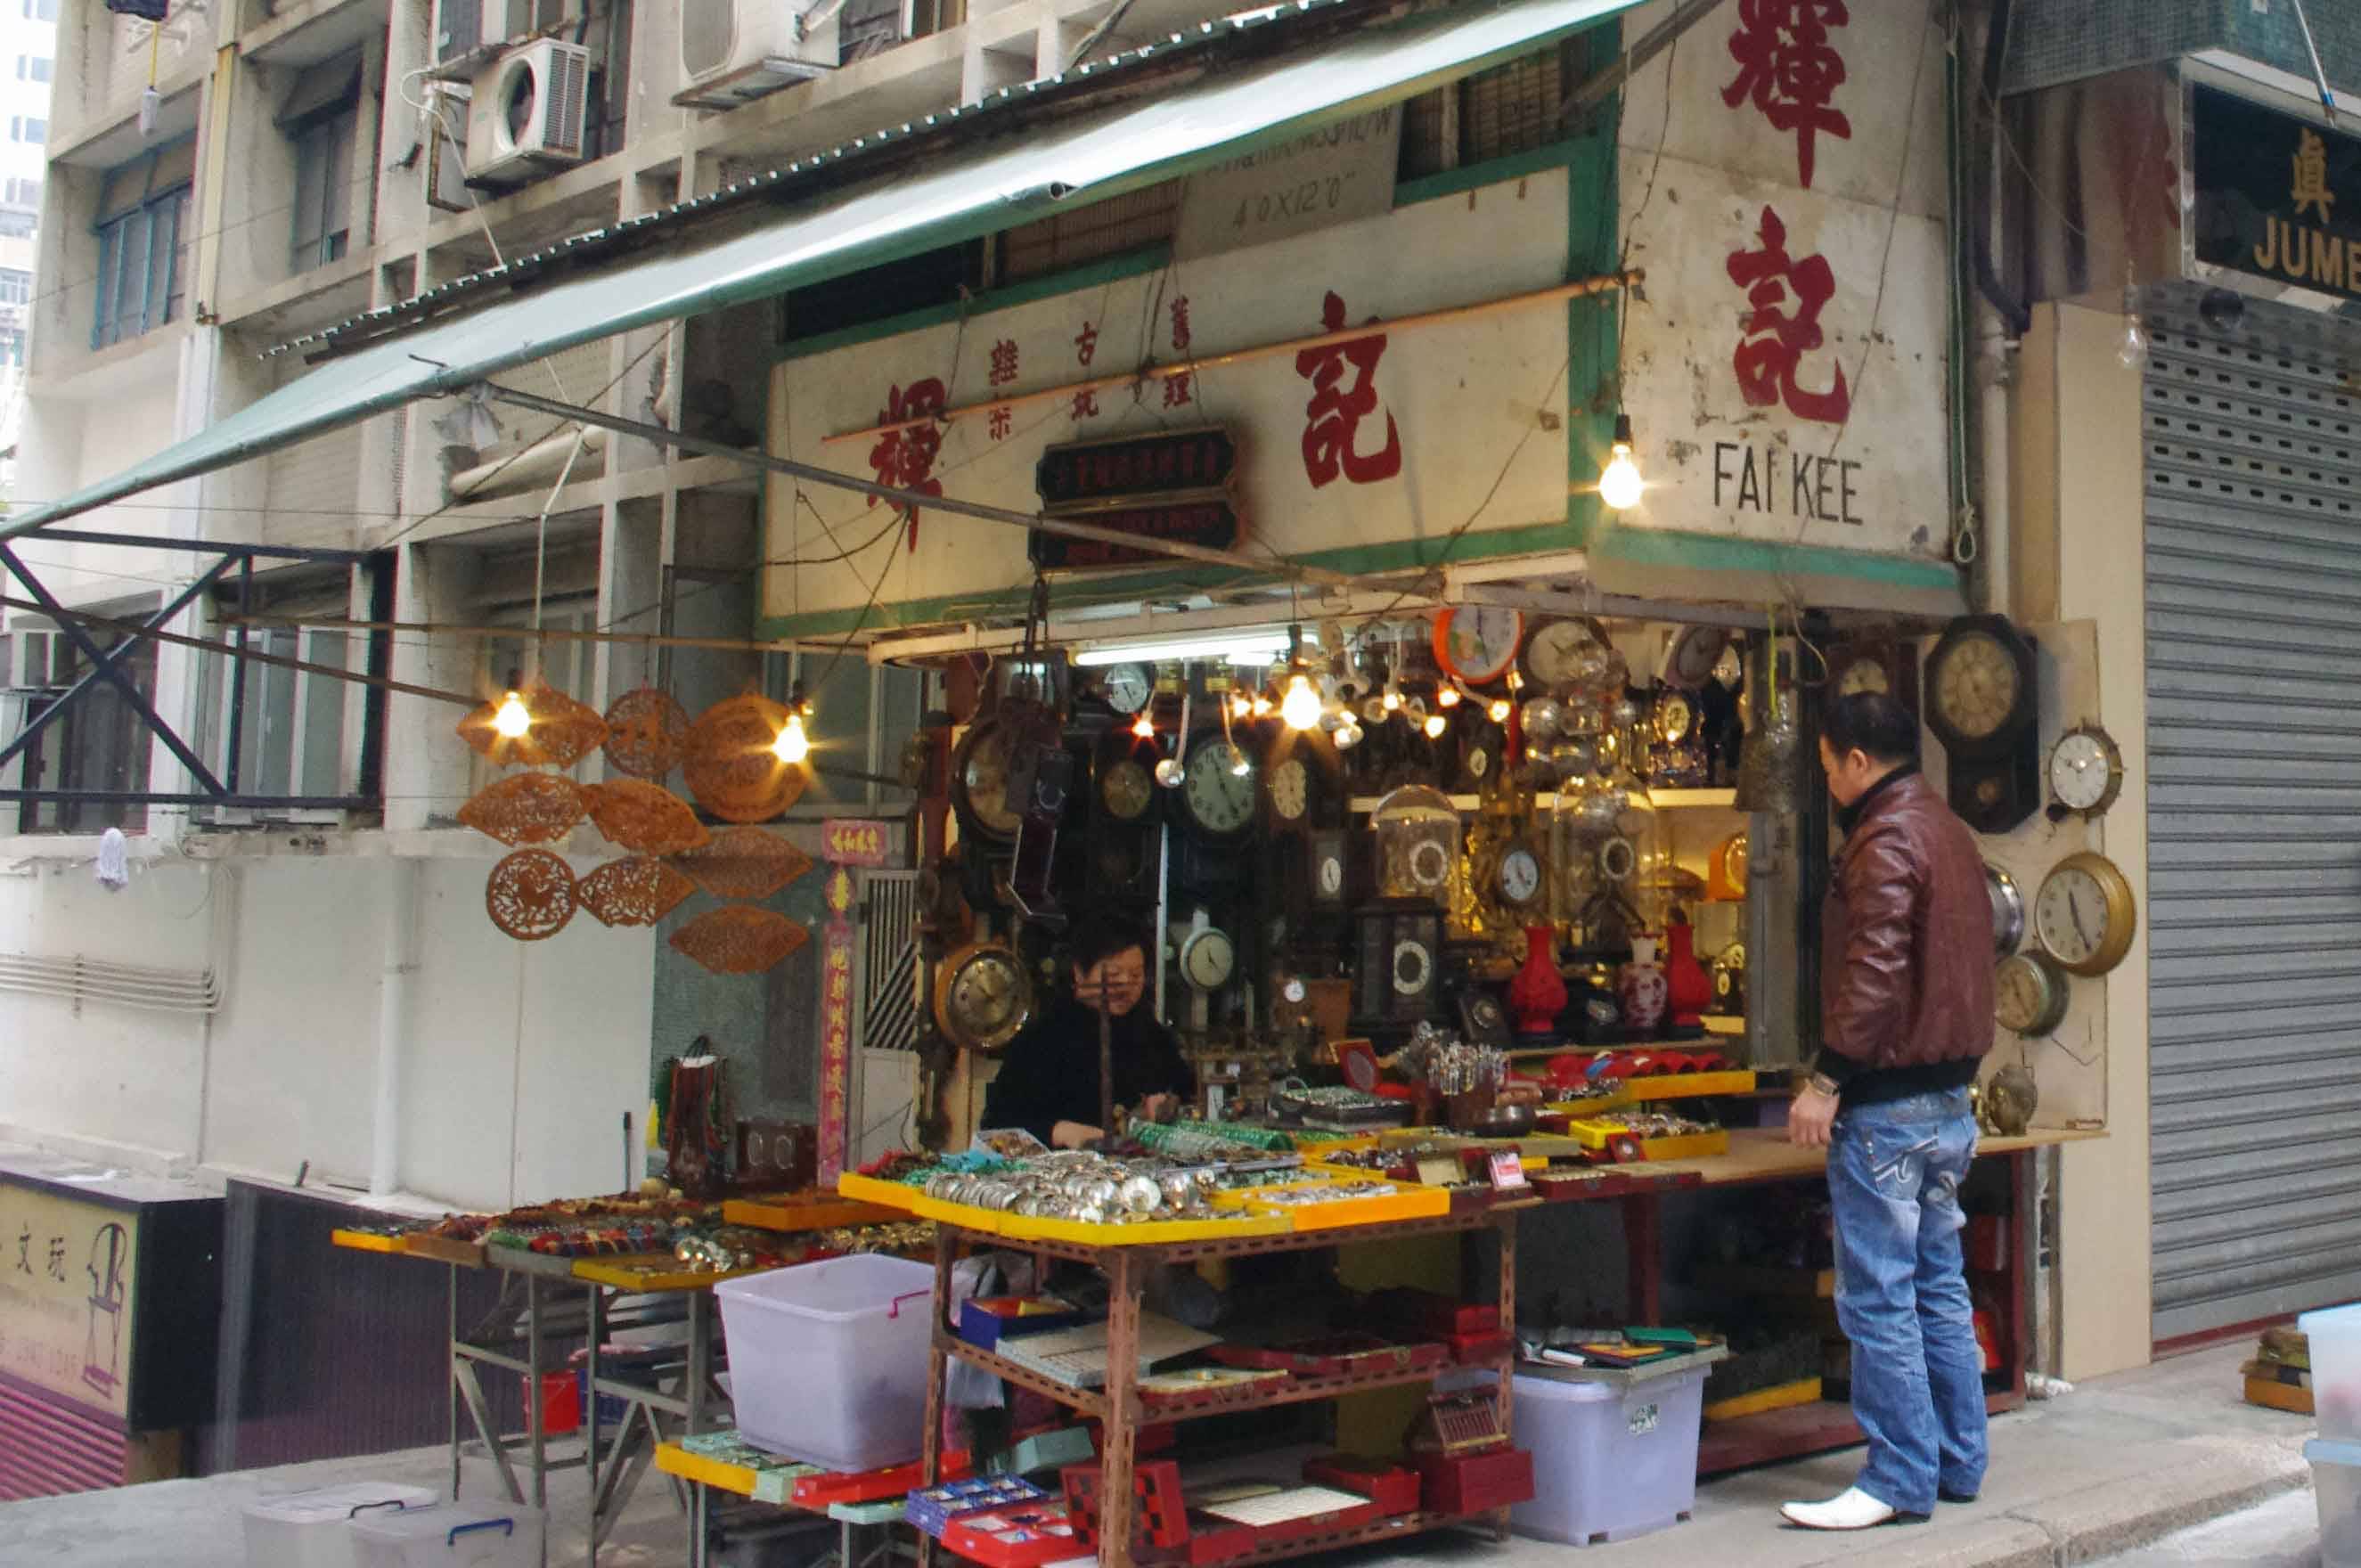 Stall selling affordable antiques on Hollywood Road in Hong Kong. Photo by alphacityguides.